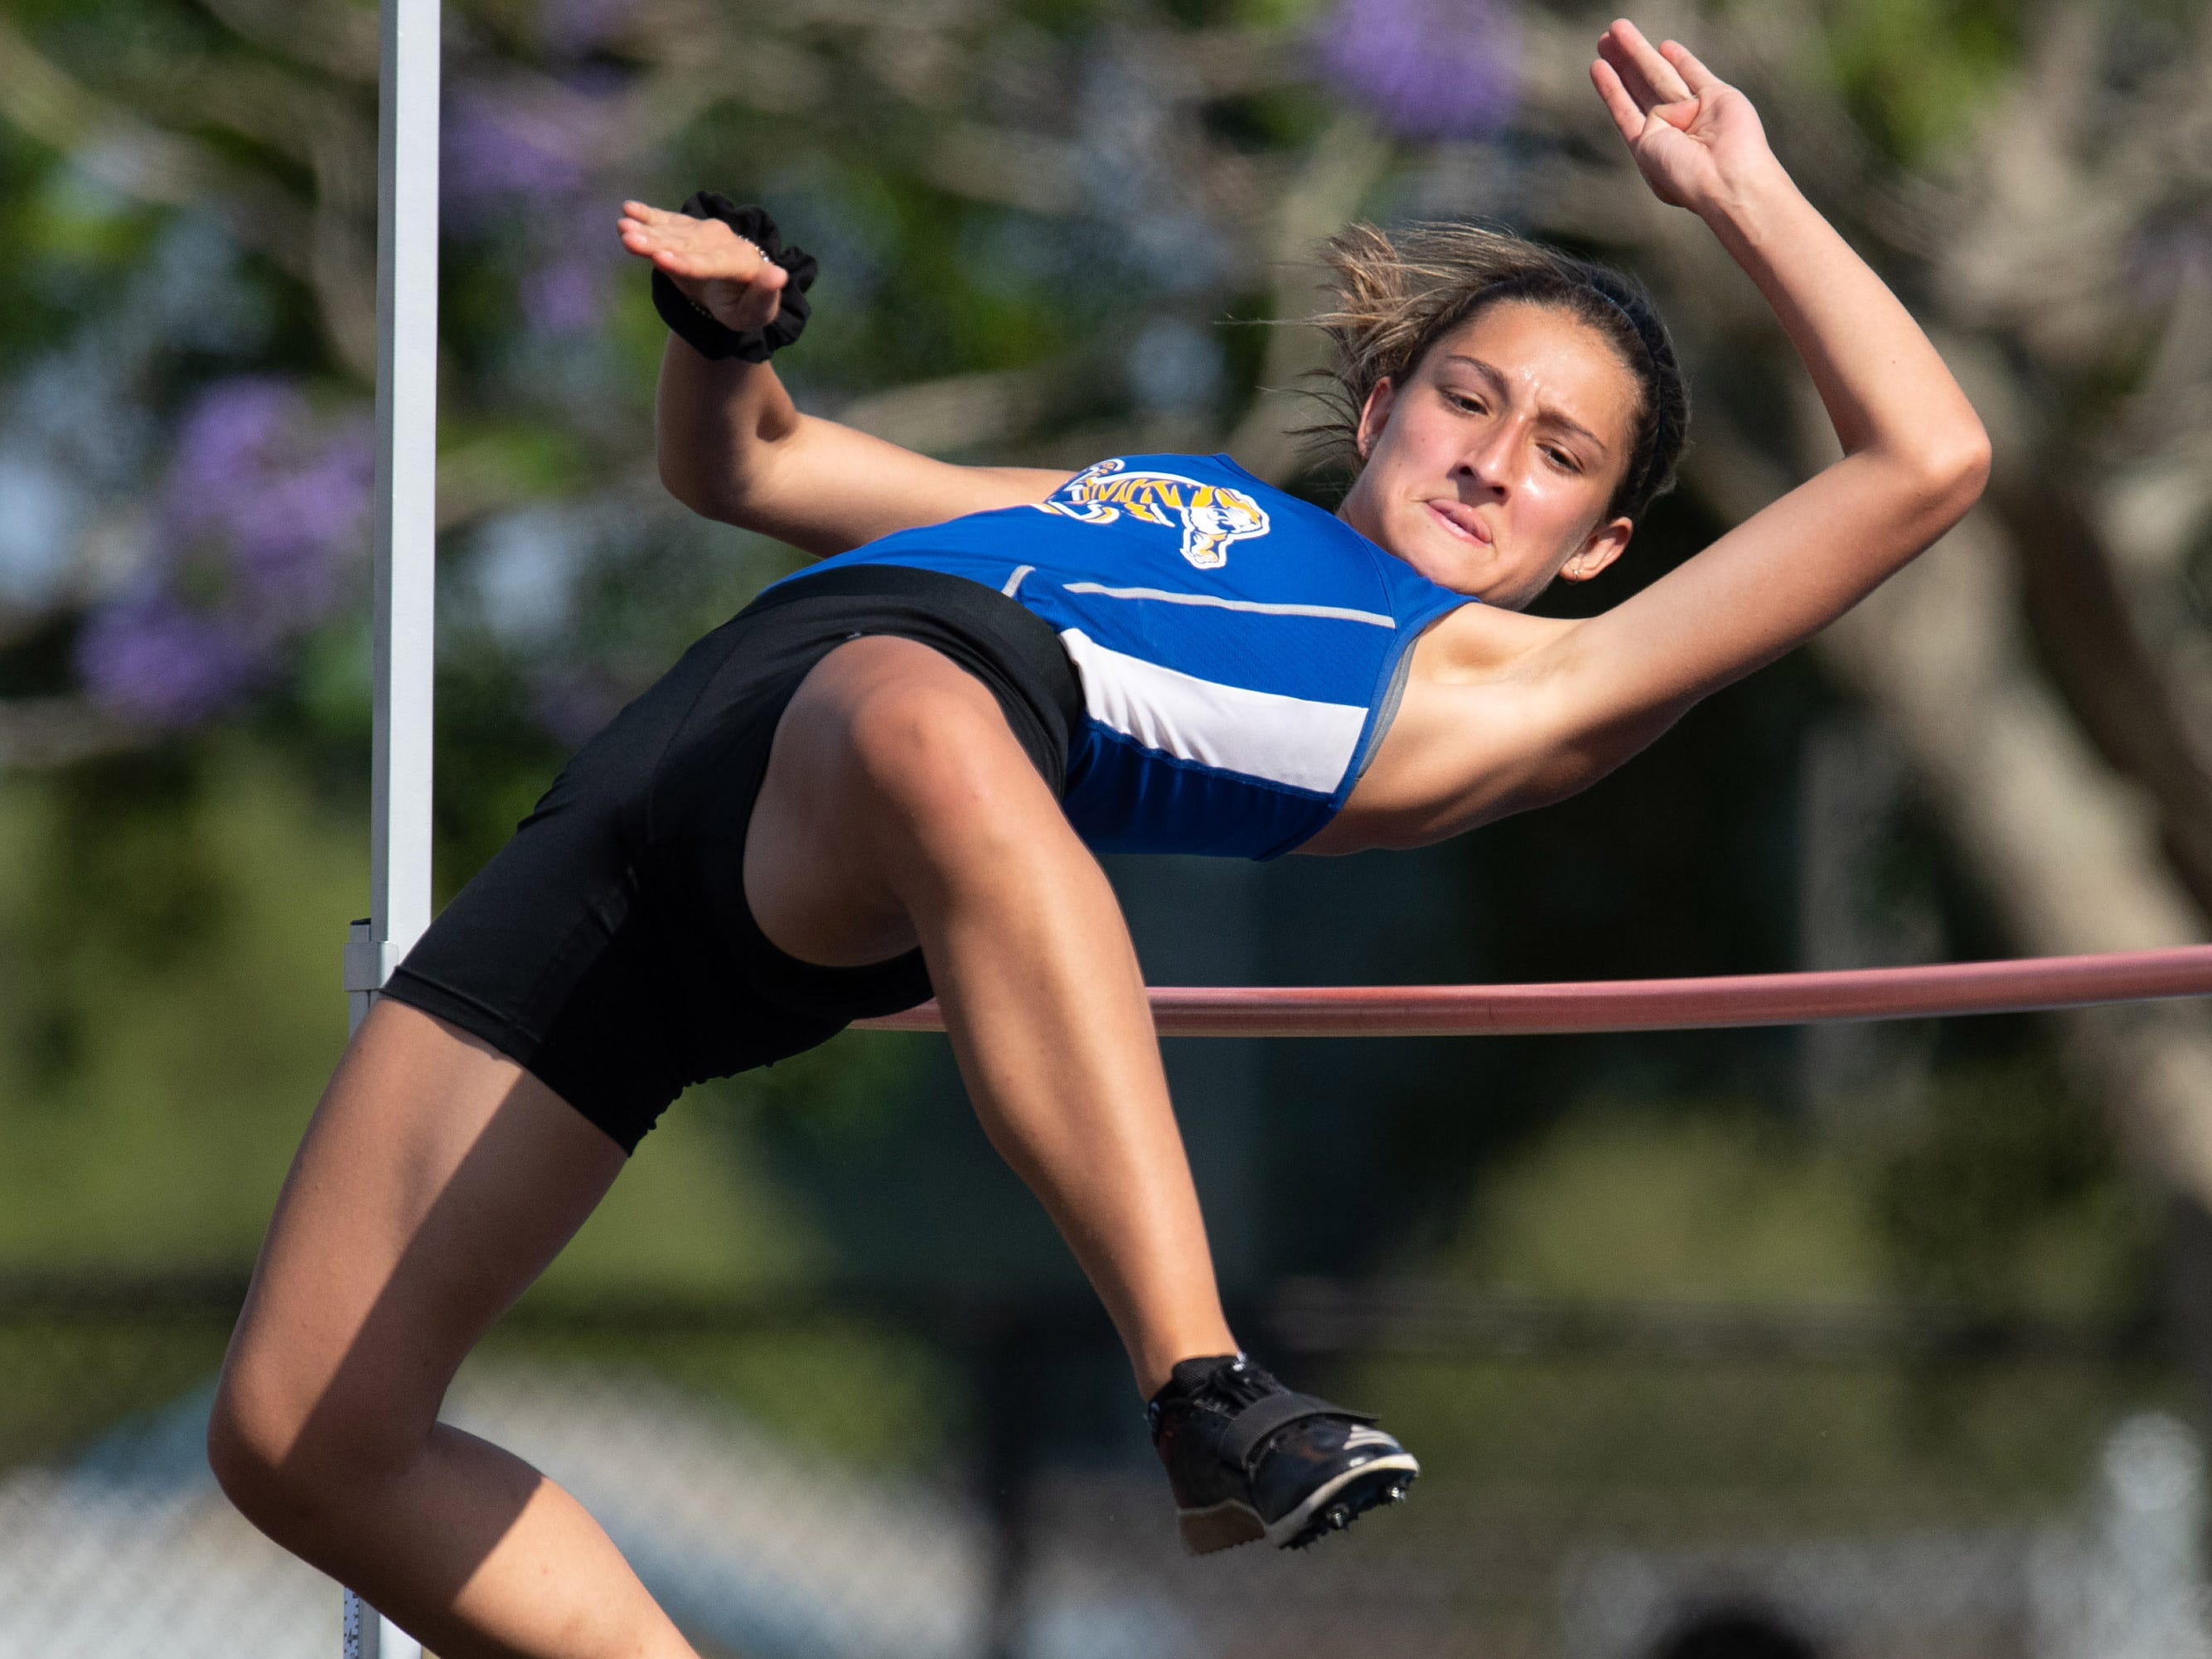 Martin County's Samantha Rosenberg competes in the high jump during the District 9-4A Track Meet at Martin County High School on Wednesday, April 10, 2019, in Stuart.